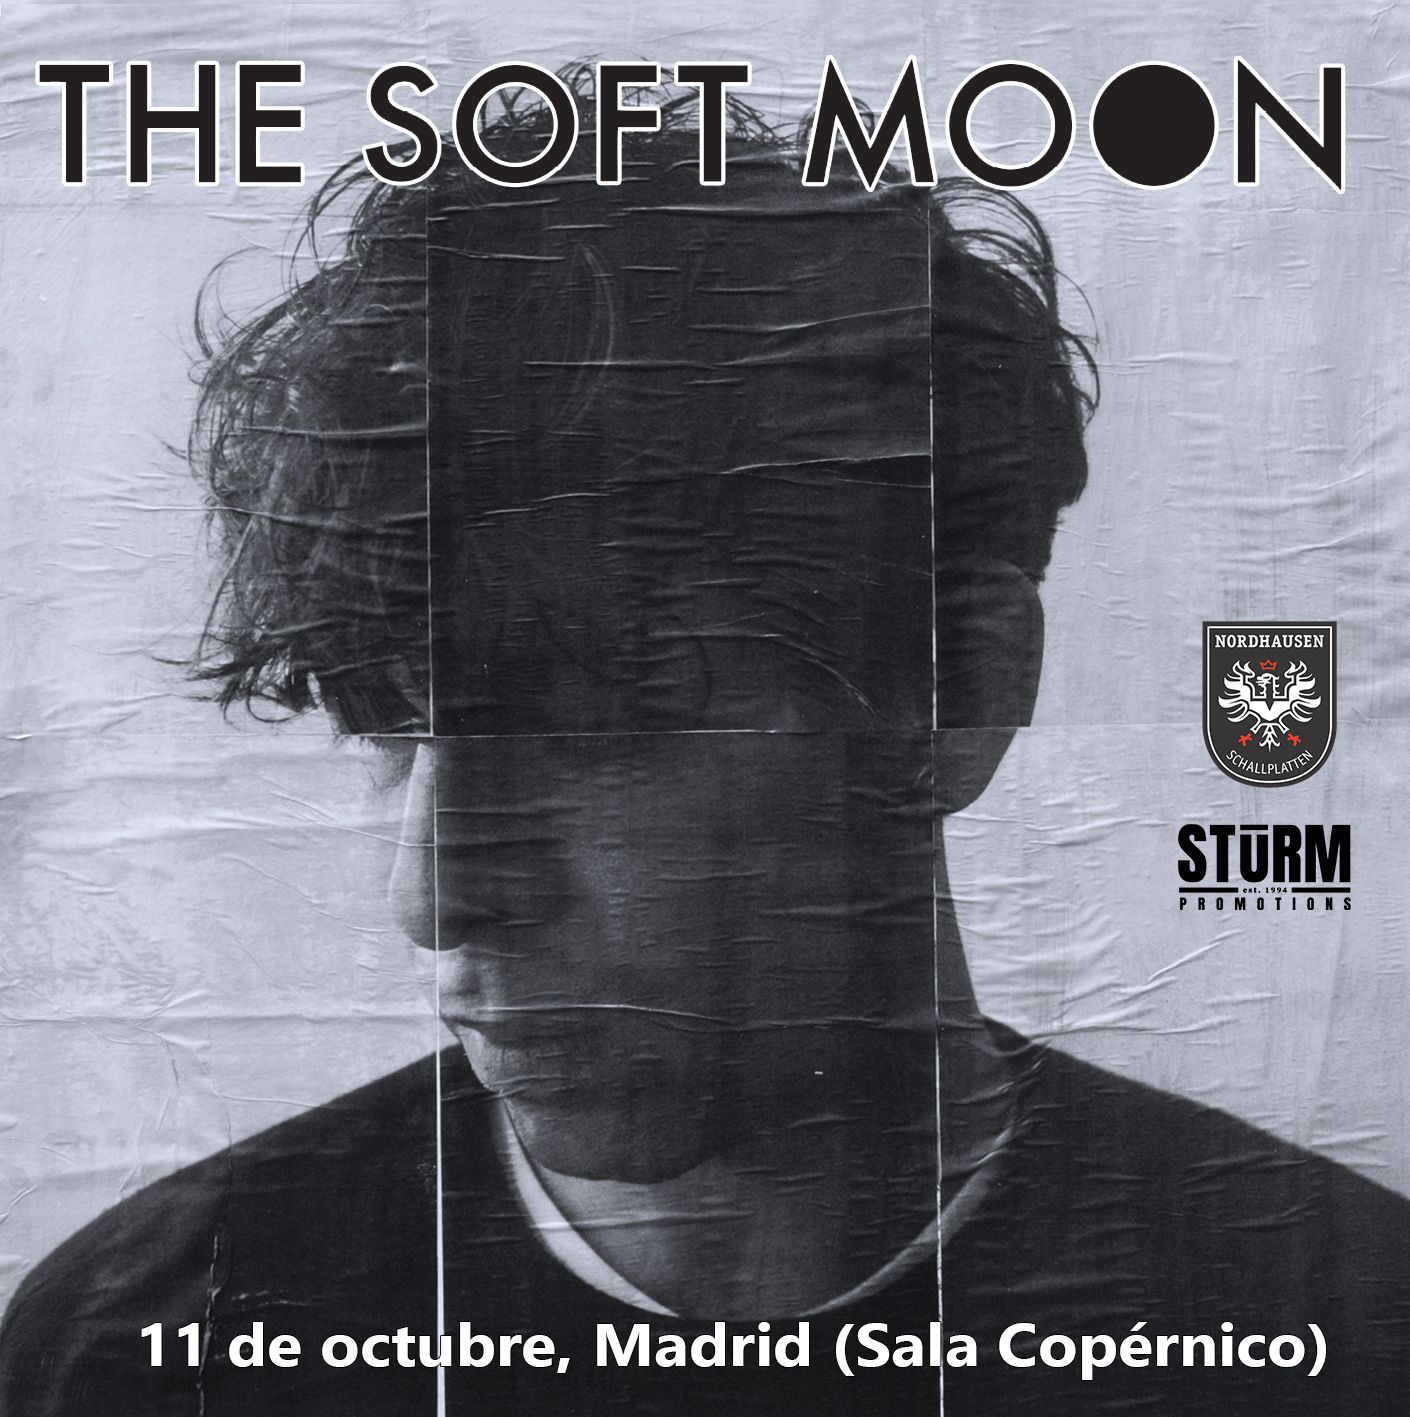 The Soft Moon Concert Ticket (TICKET10003)